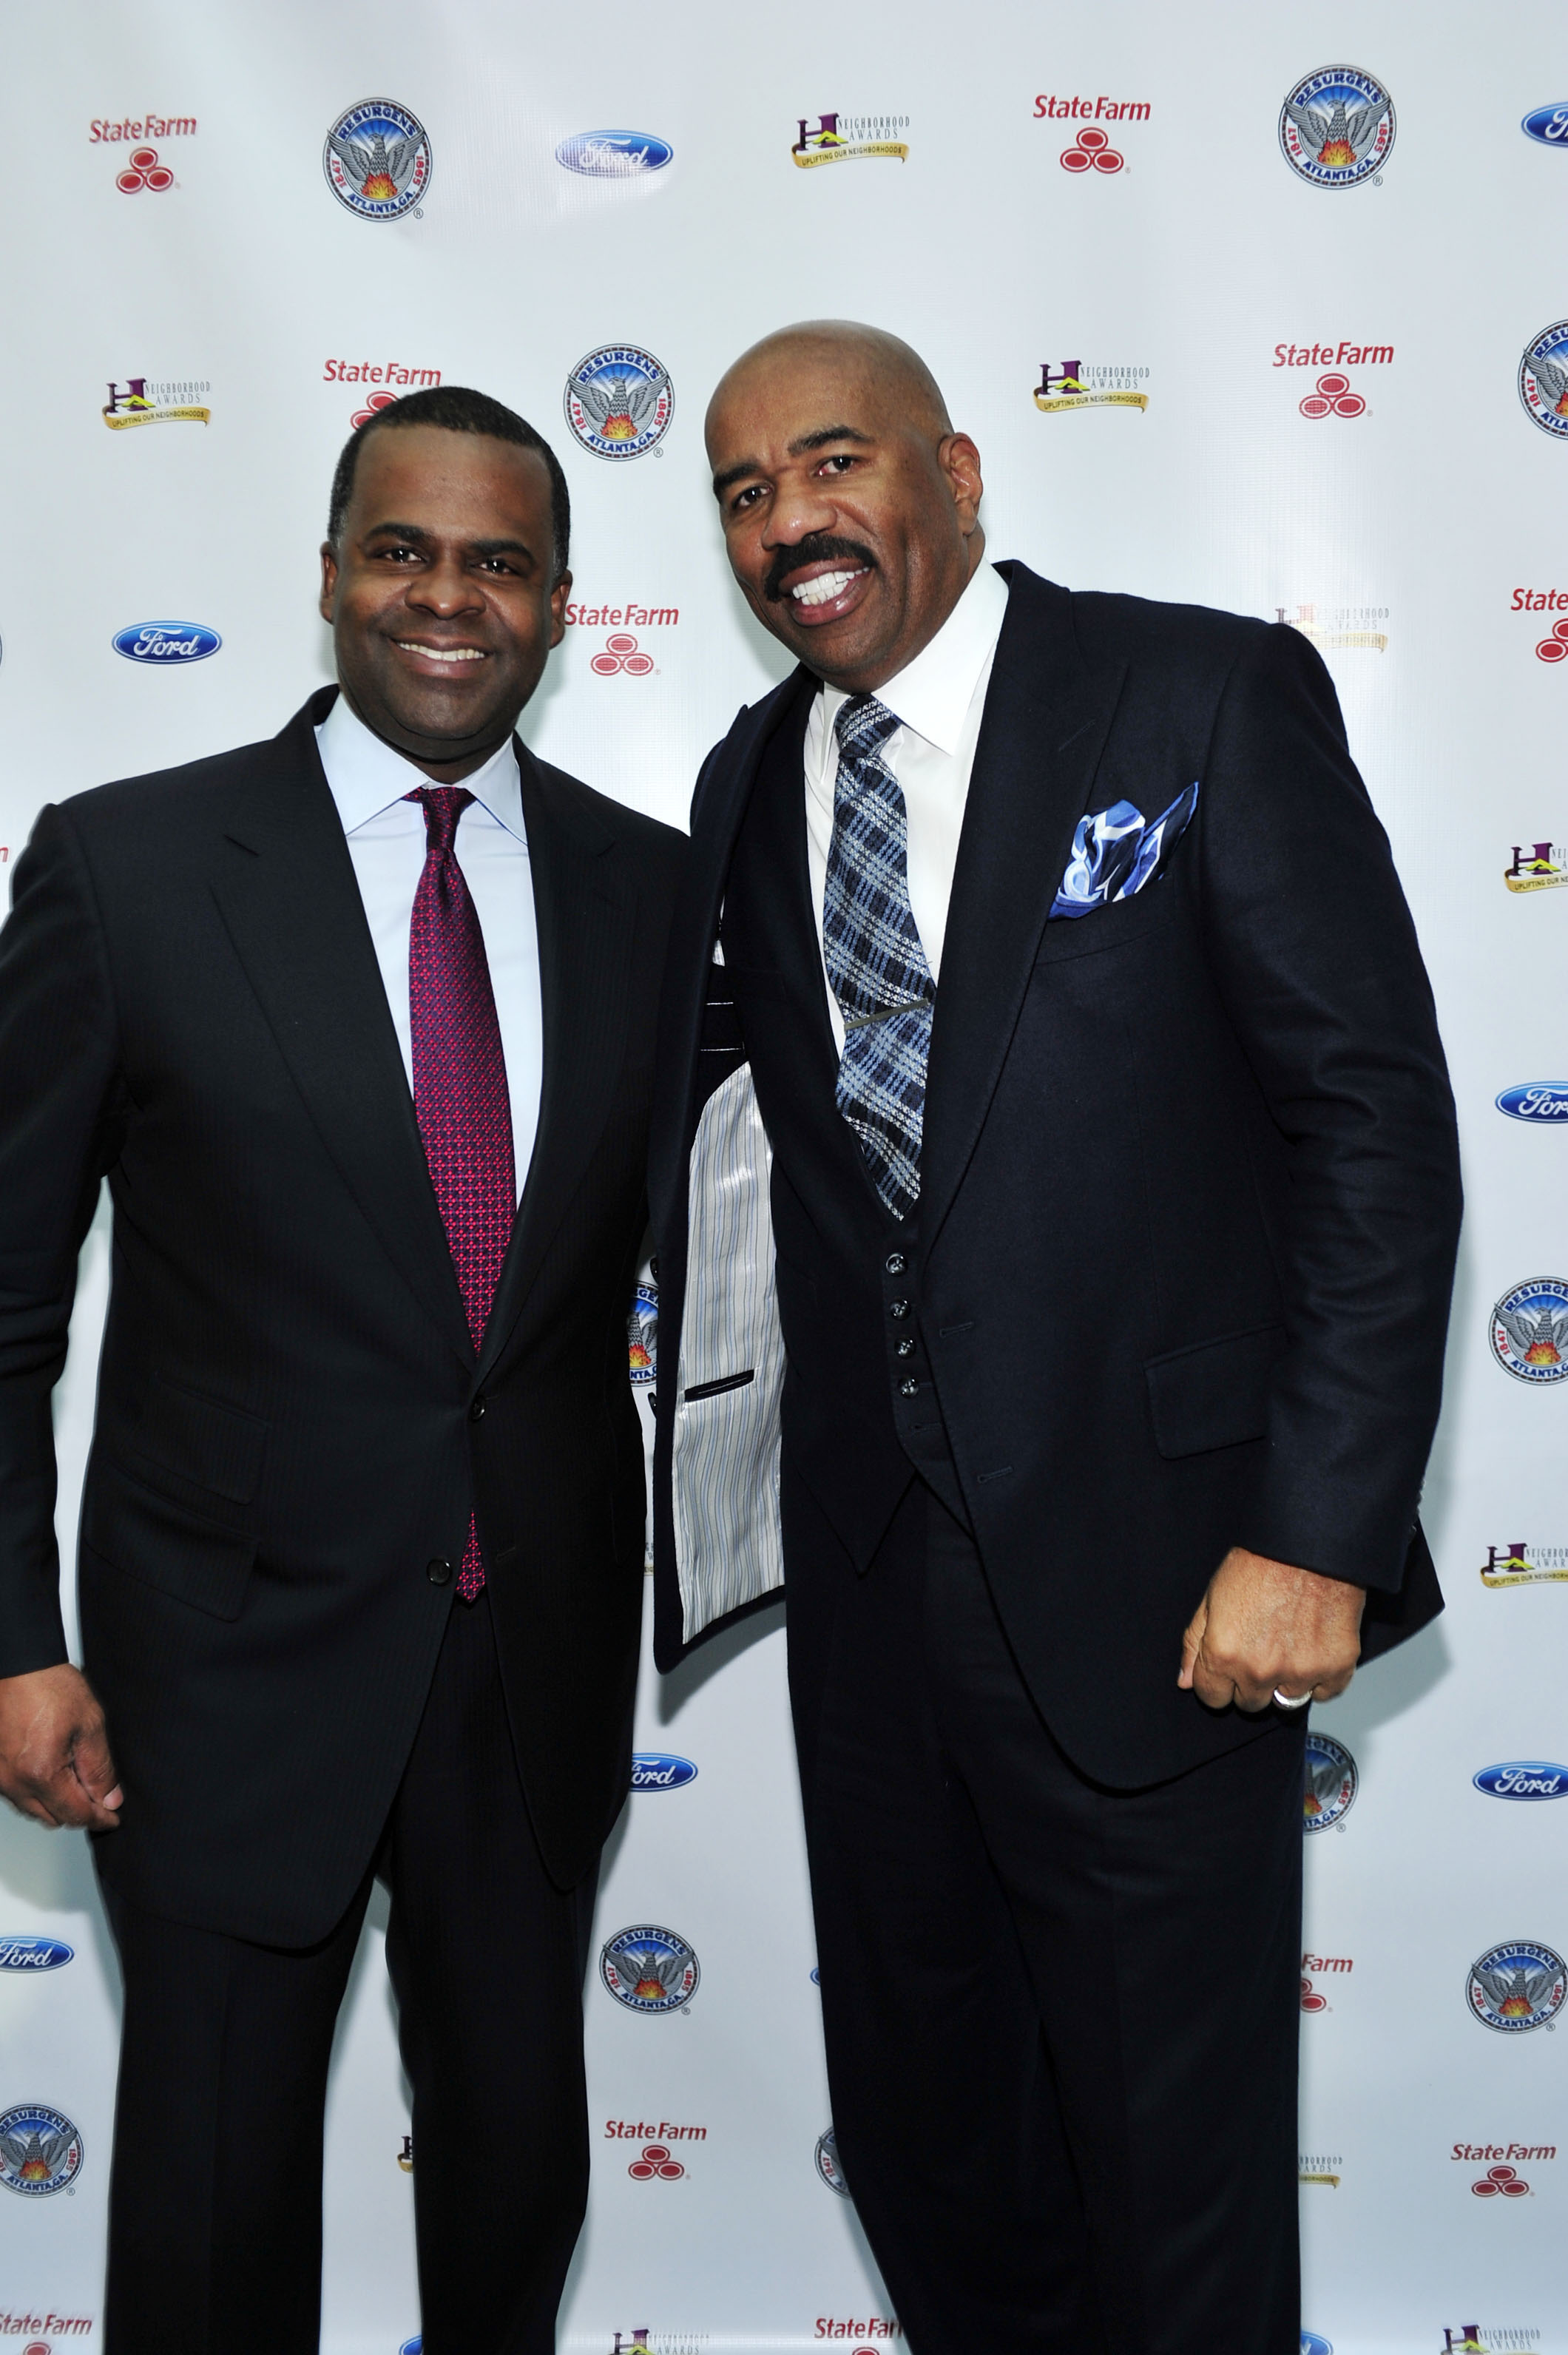 Steve Harvey to host 2014 Ford Neighborhood Awards in Atlanta!